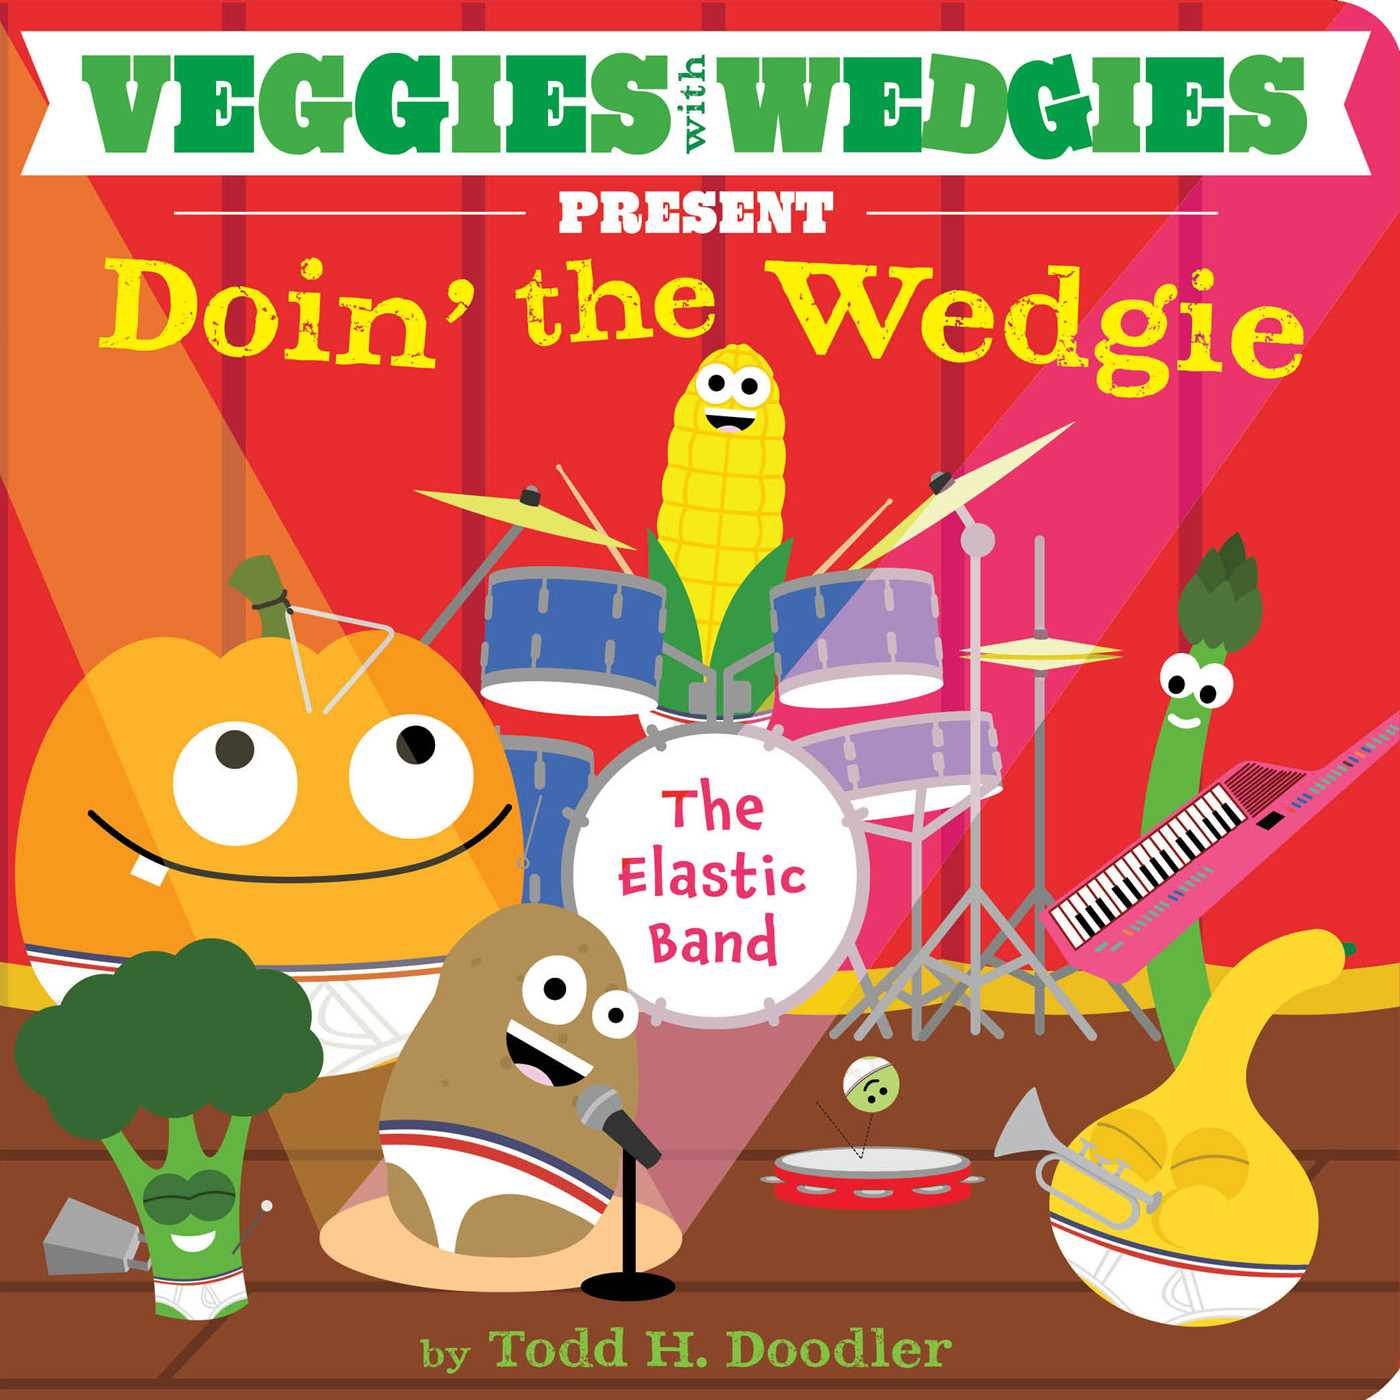 Veggies with wedgies present doin the wedgie 9781442493513 hr